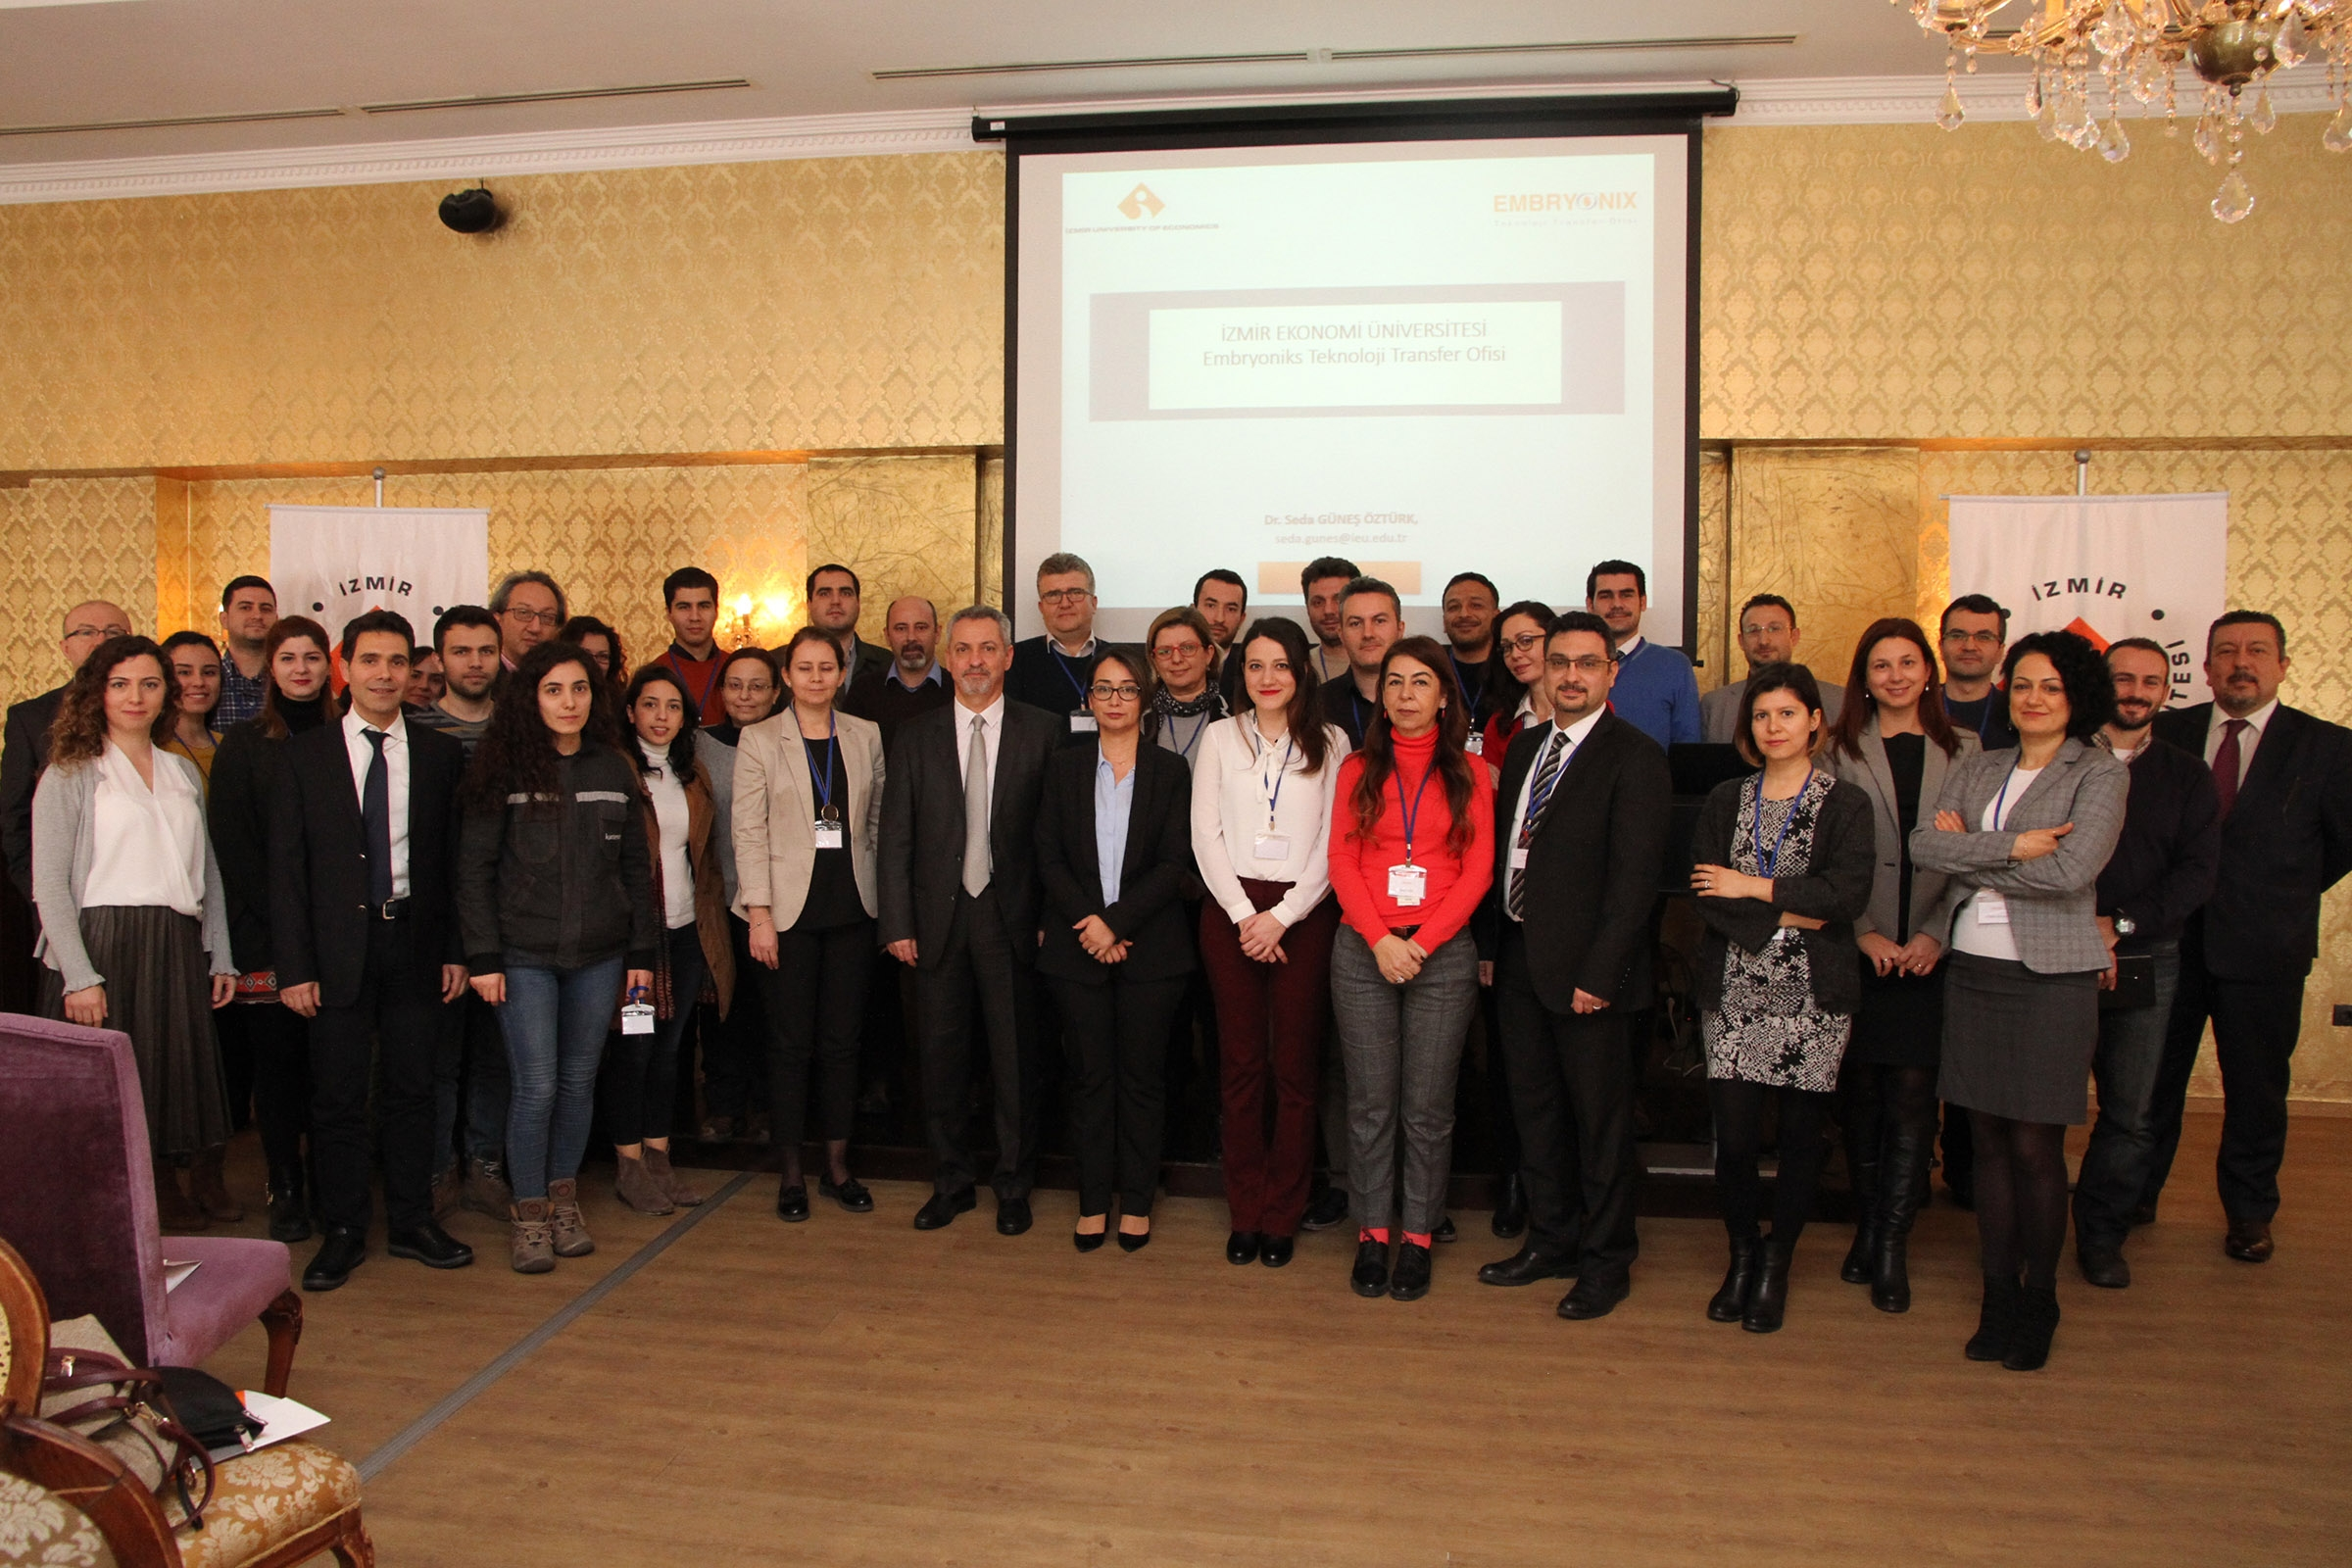 R&D CENTERS CAME TOGETHER AT IZMIR UNIVERSITY OF ECONOMICS FOR THE FIRST TIME